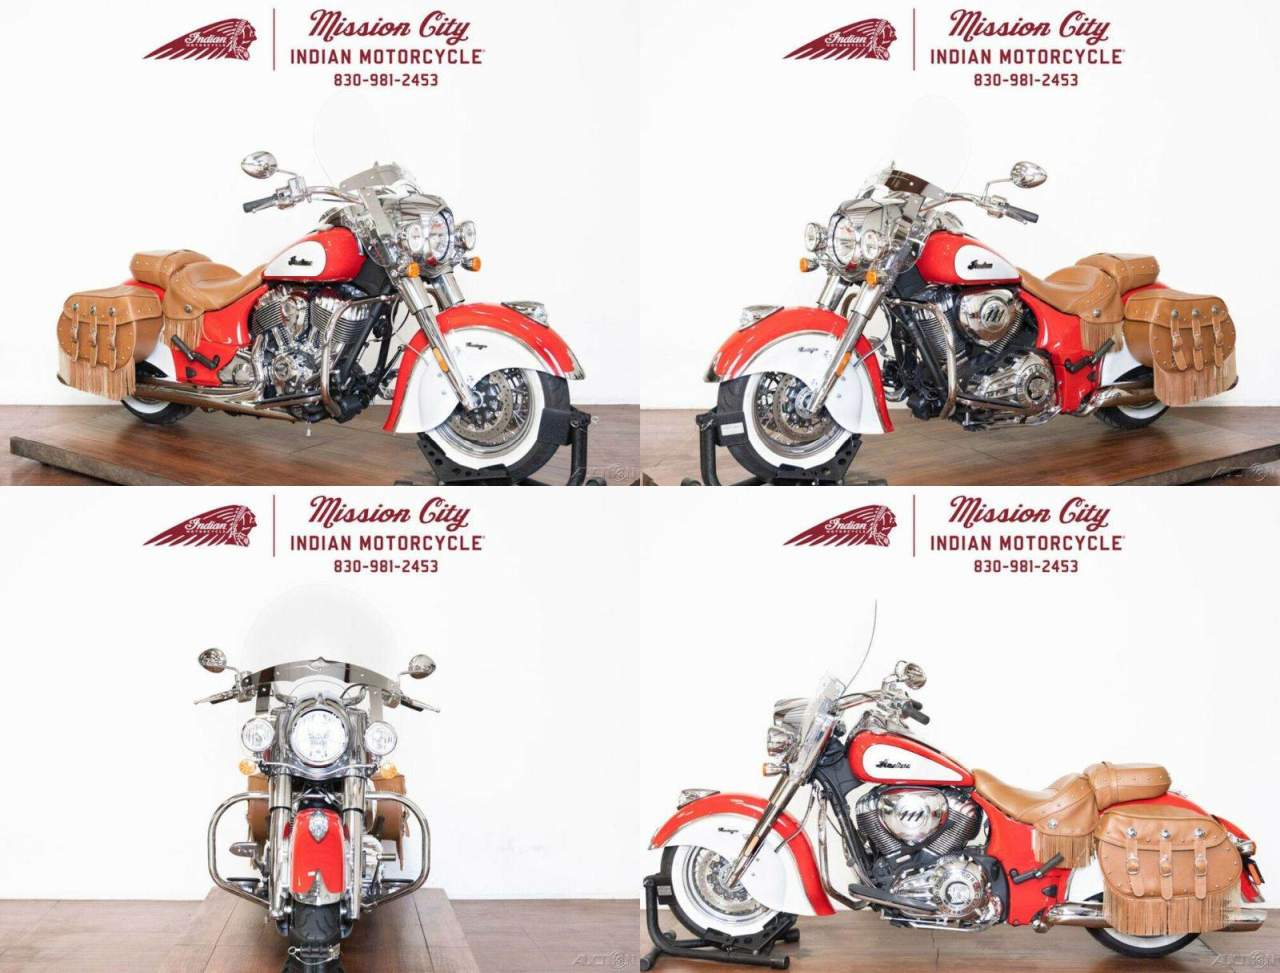 2019 Indian Chief Vintage Icon Series Patriot RedPearl White Patriot Red/Pearl White used for sale near me